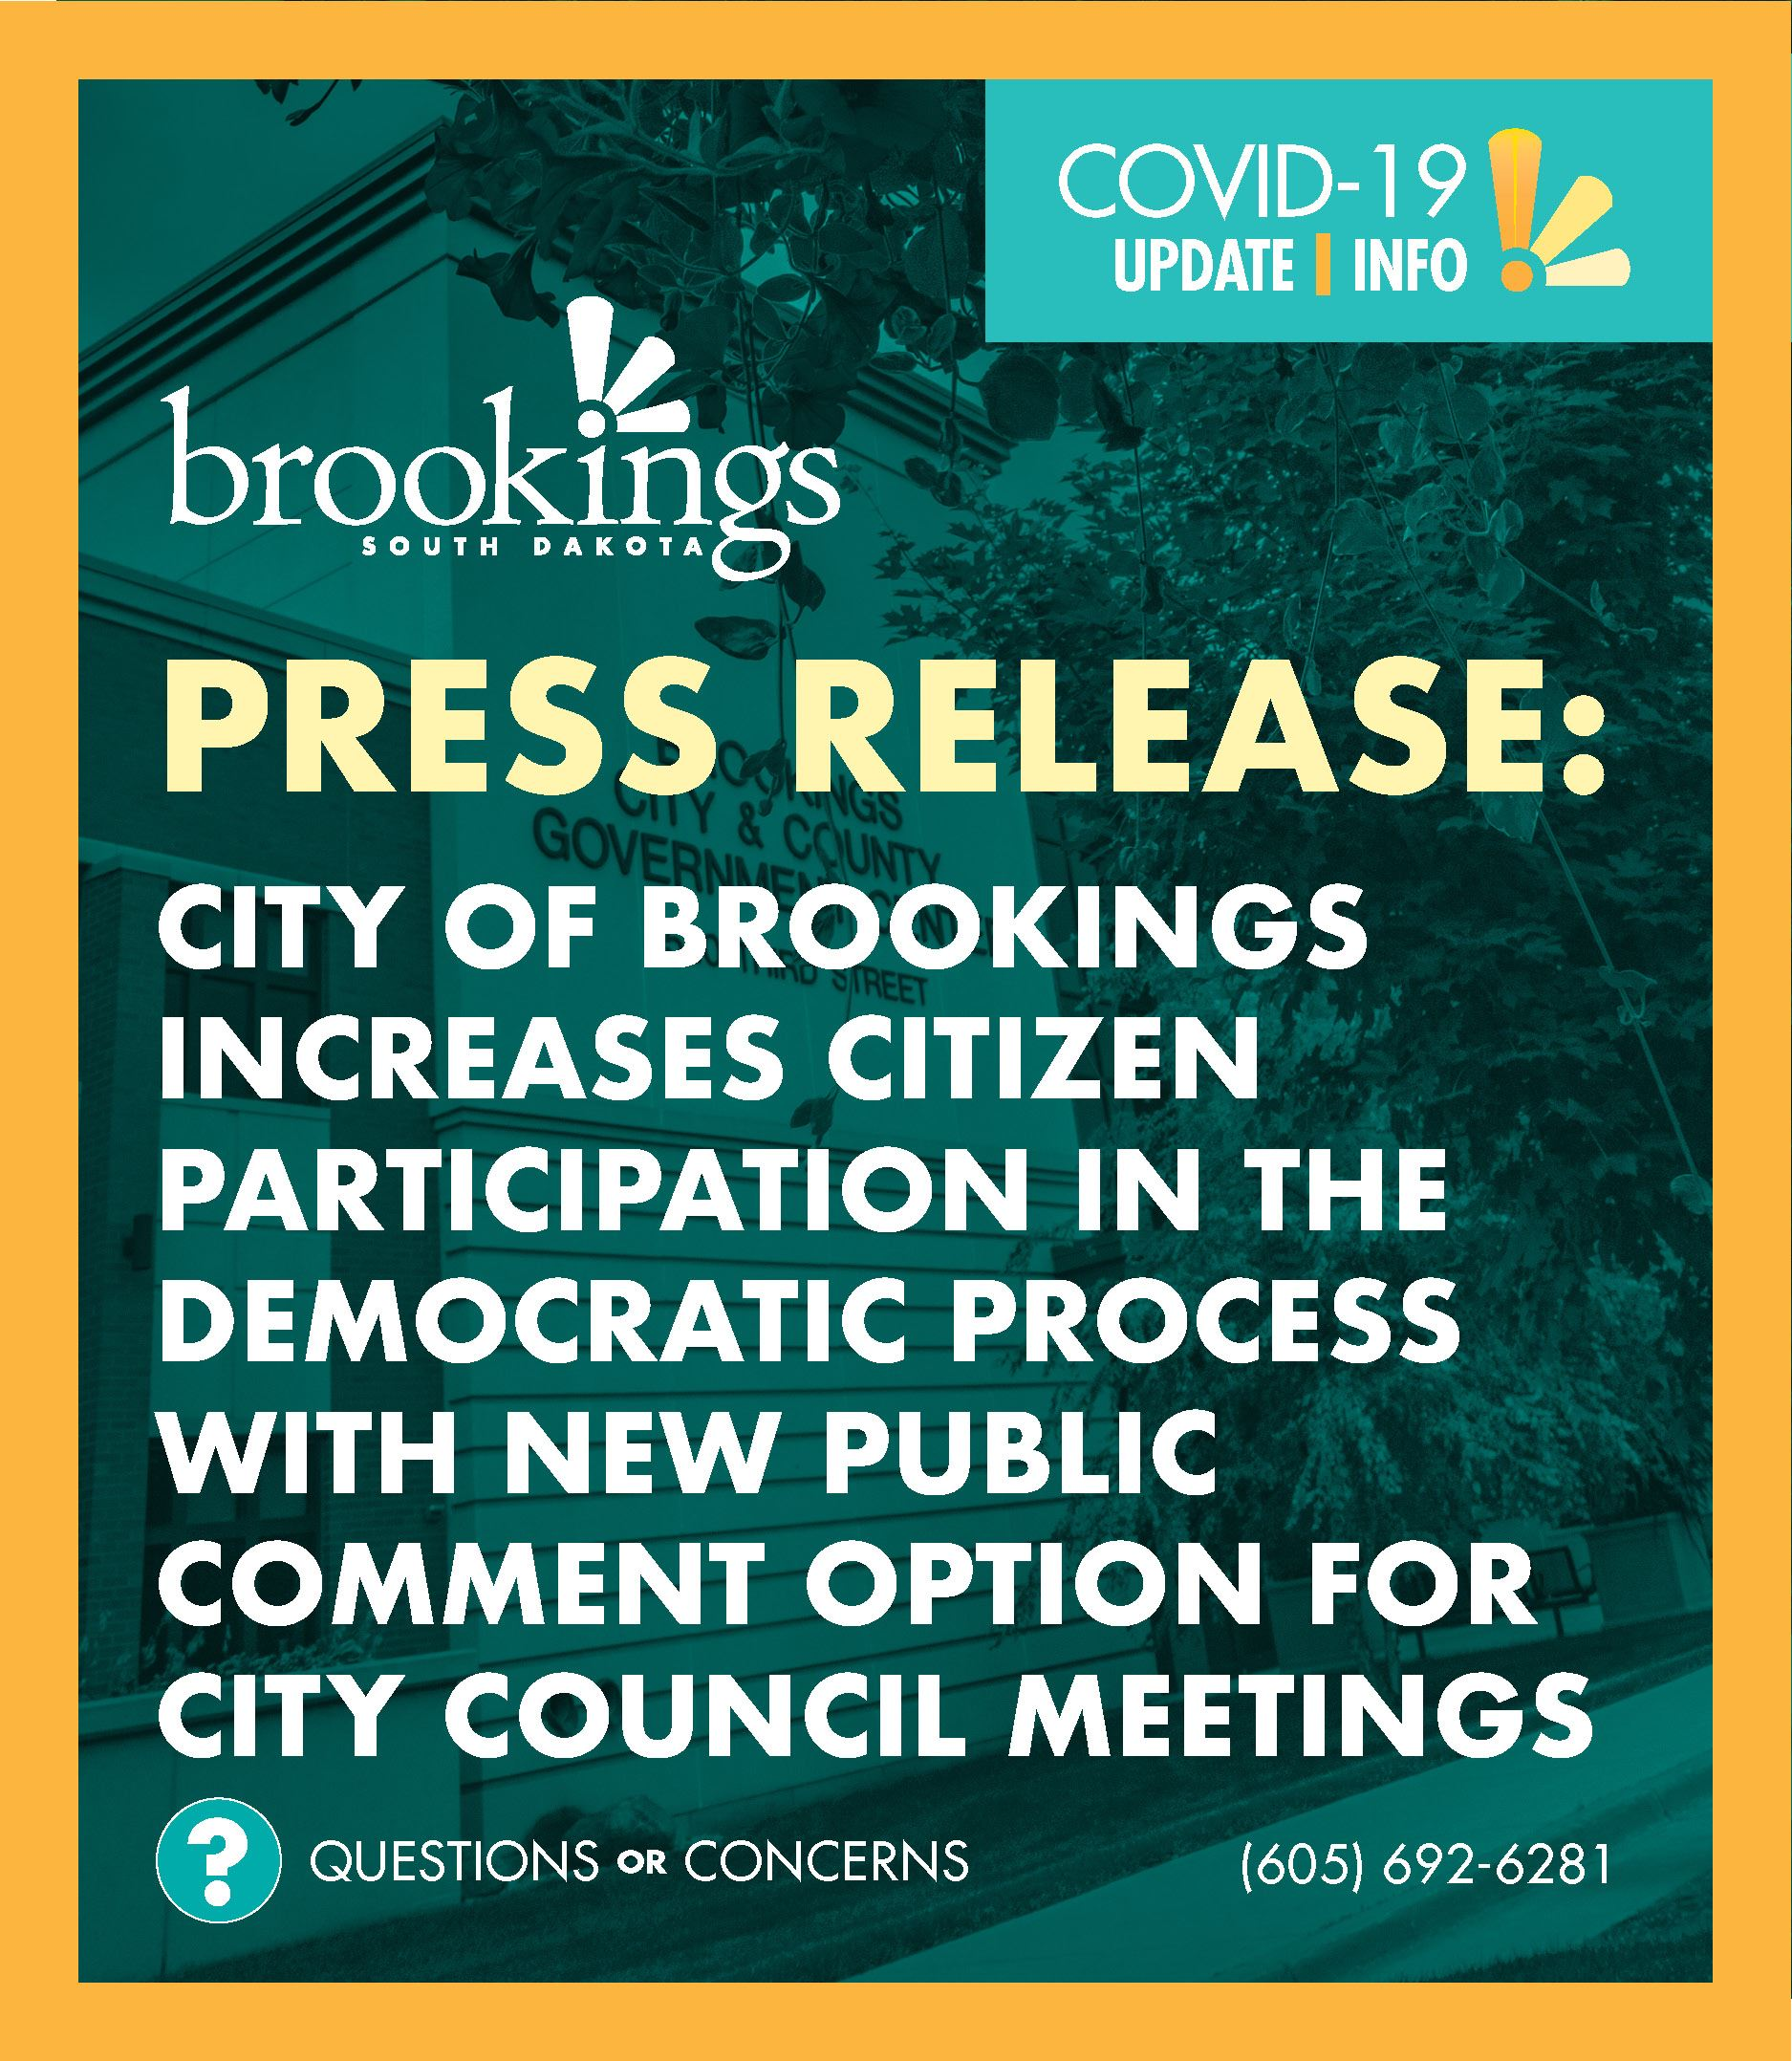 Eccoment Graphic. The City of Brookings Increases Citizen Participation in the democratic process